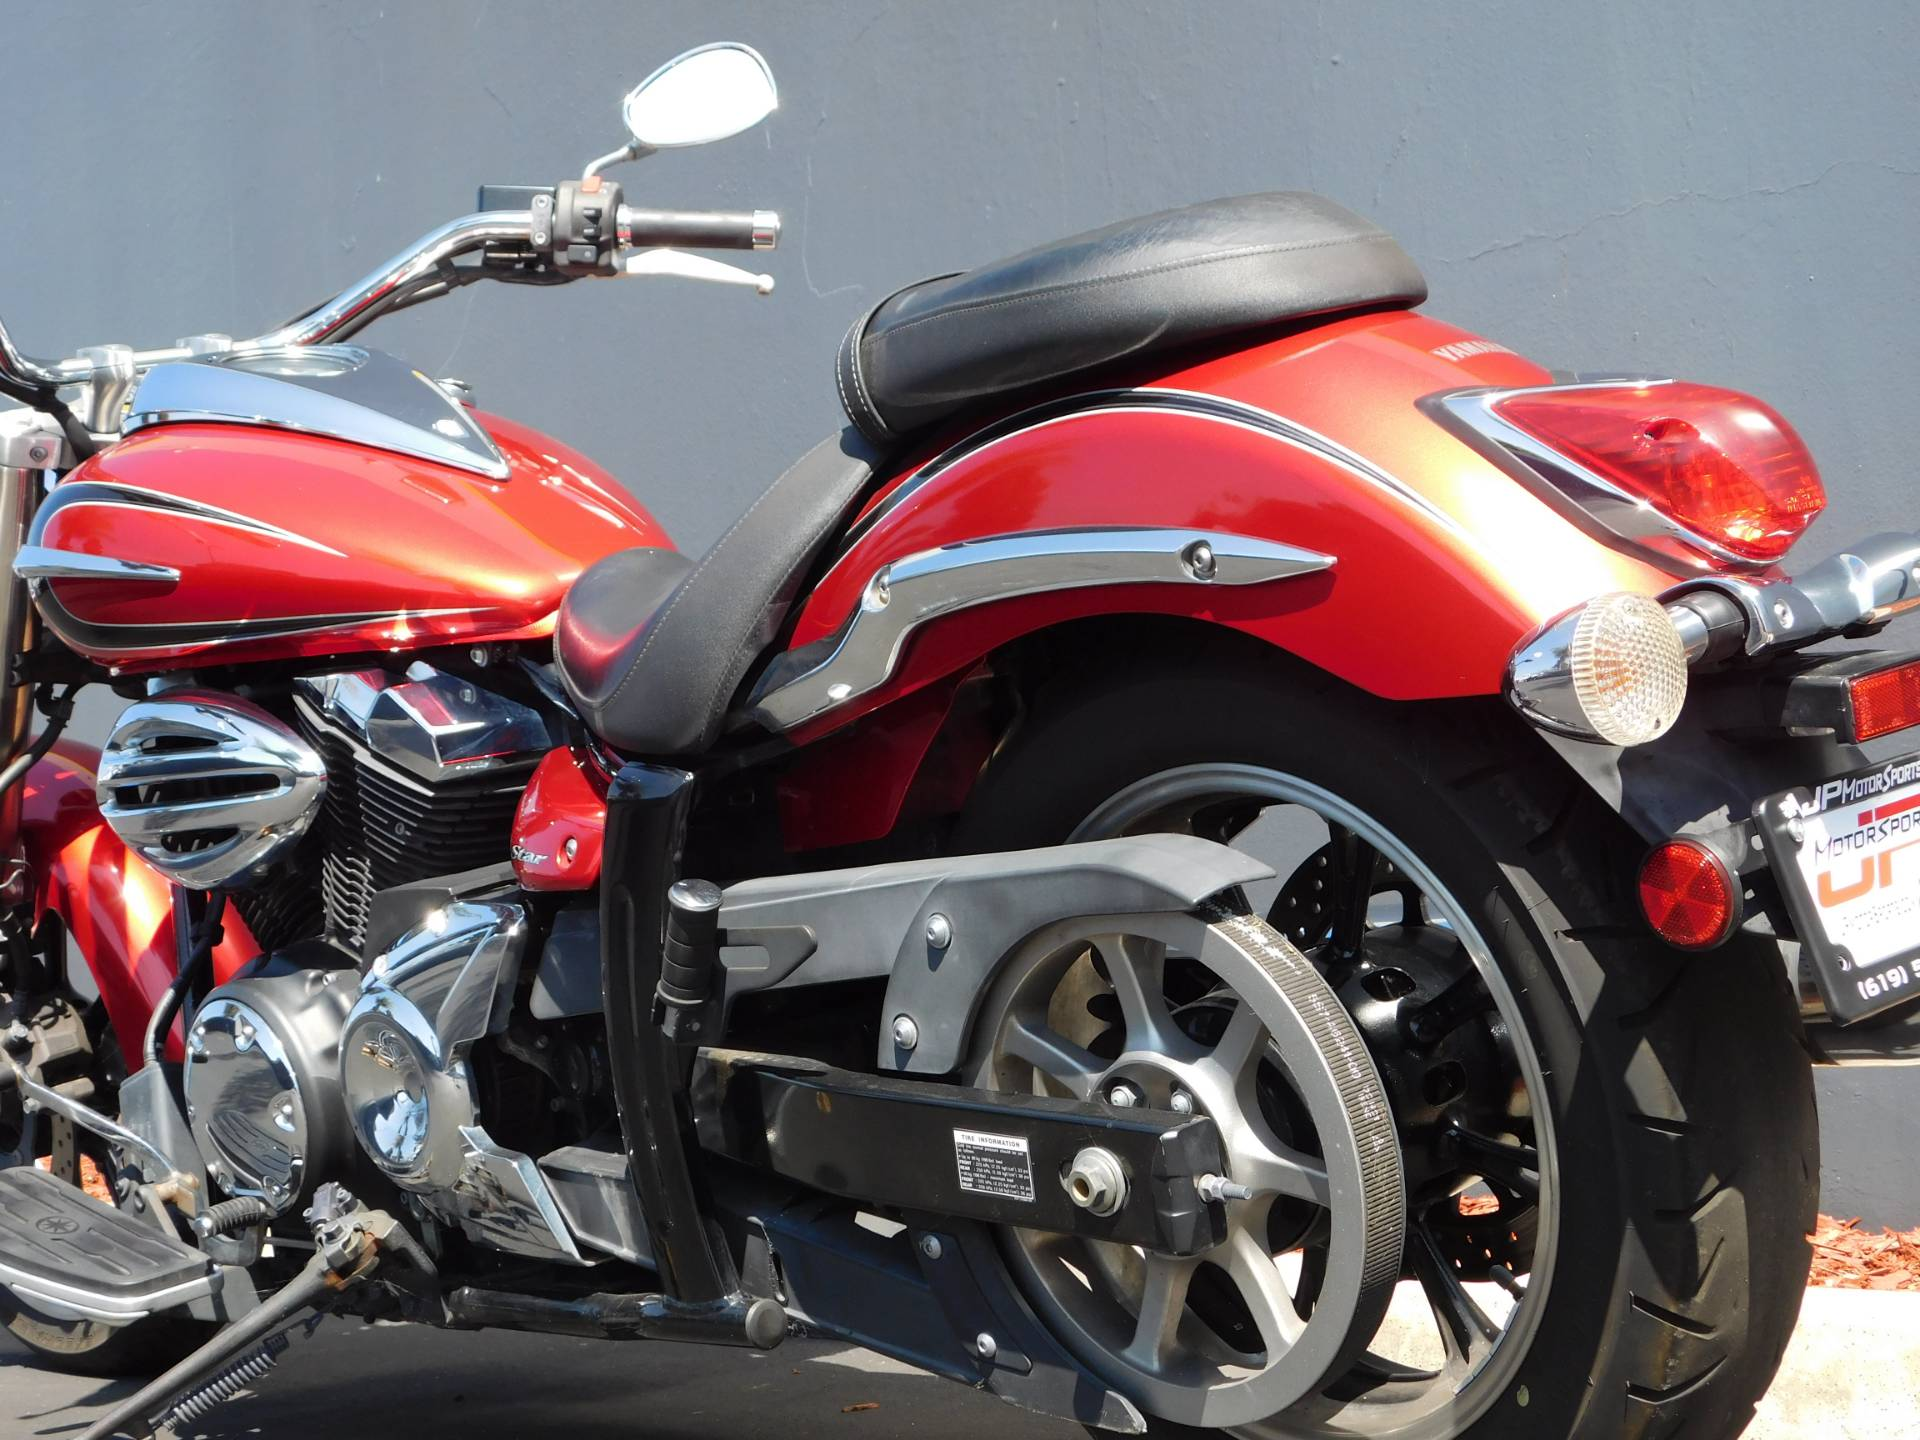 2012 Yamaha V Star 950 in Chula Vista, California - Photo 24